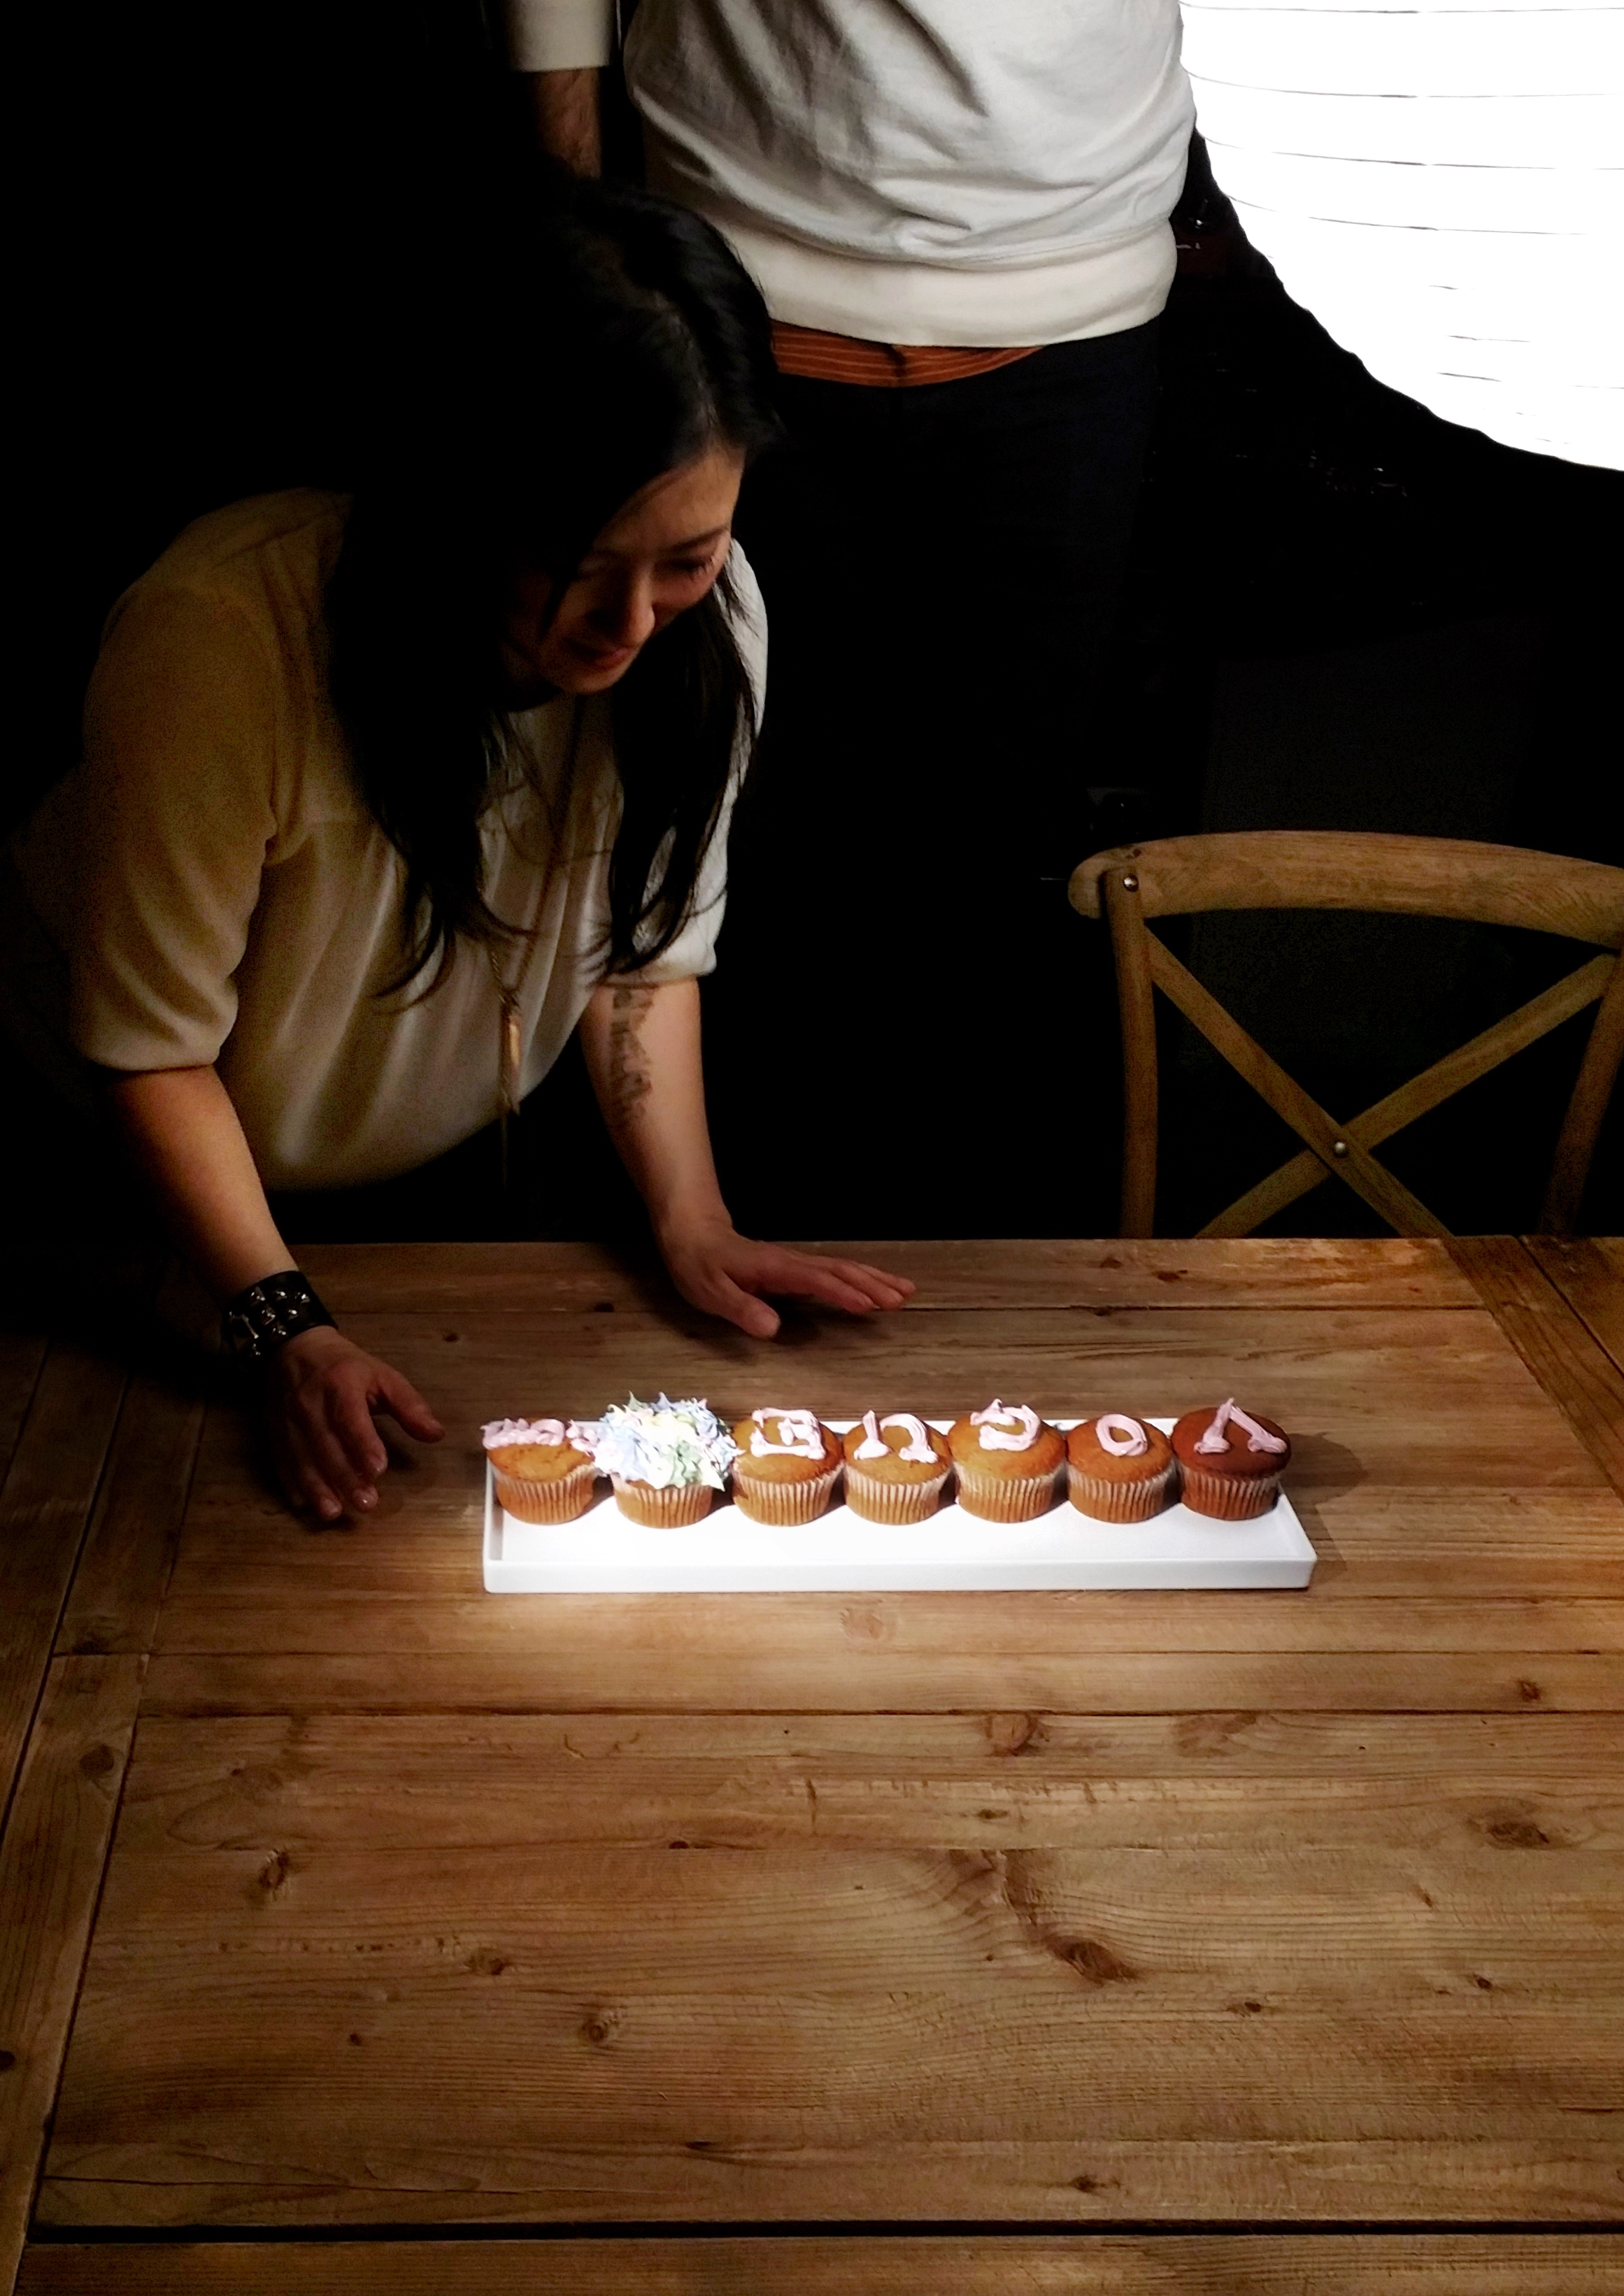 Judy Kim, NYC Food Stylist